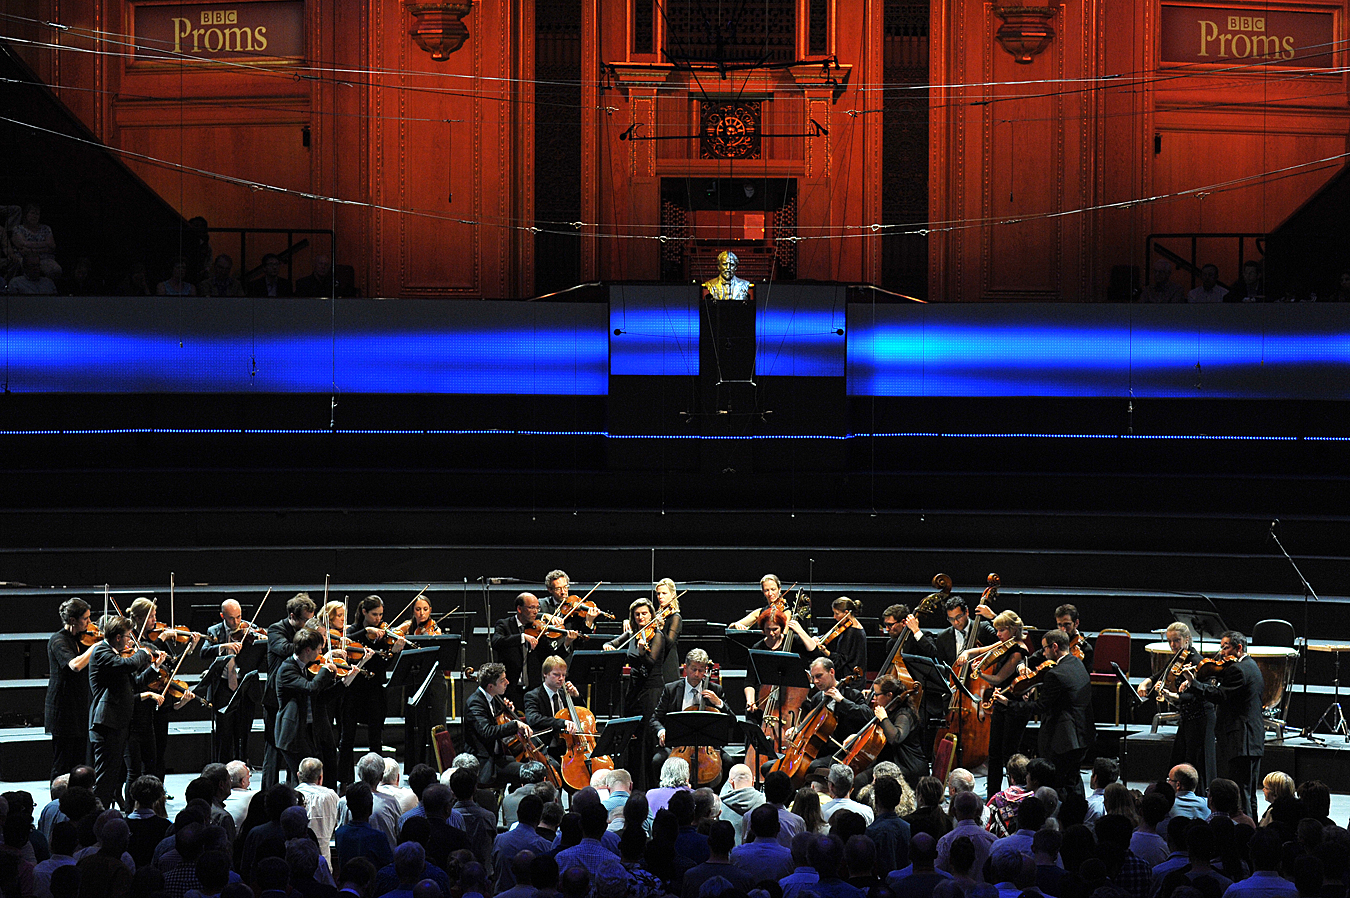 Mahler Chamber Orchestra at the Proms